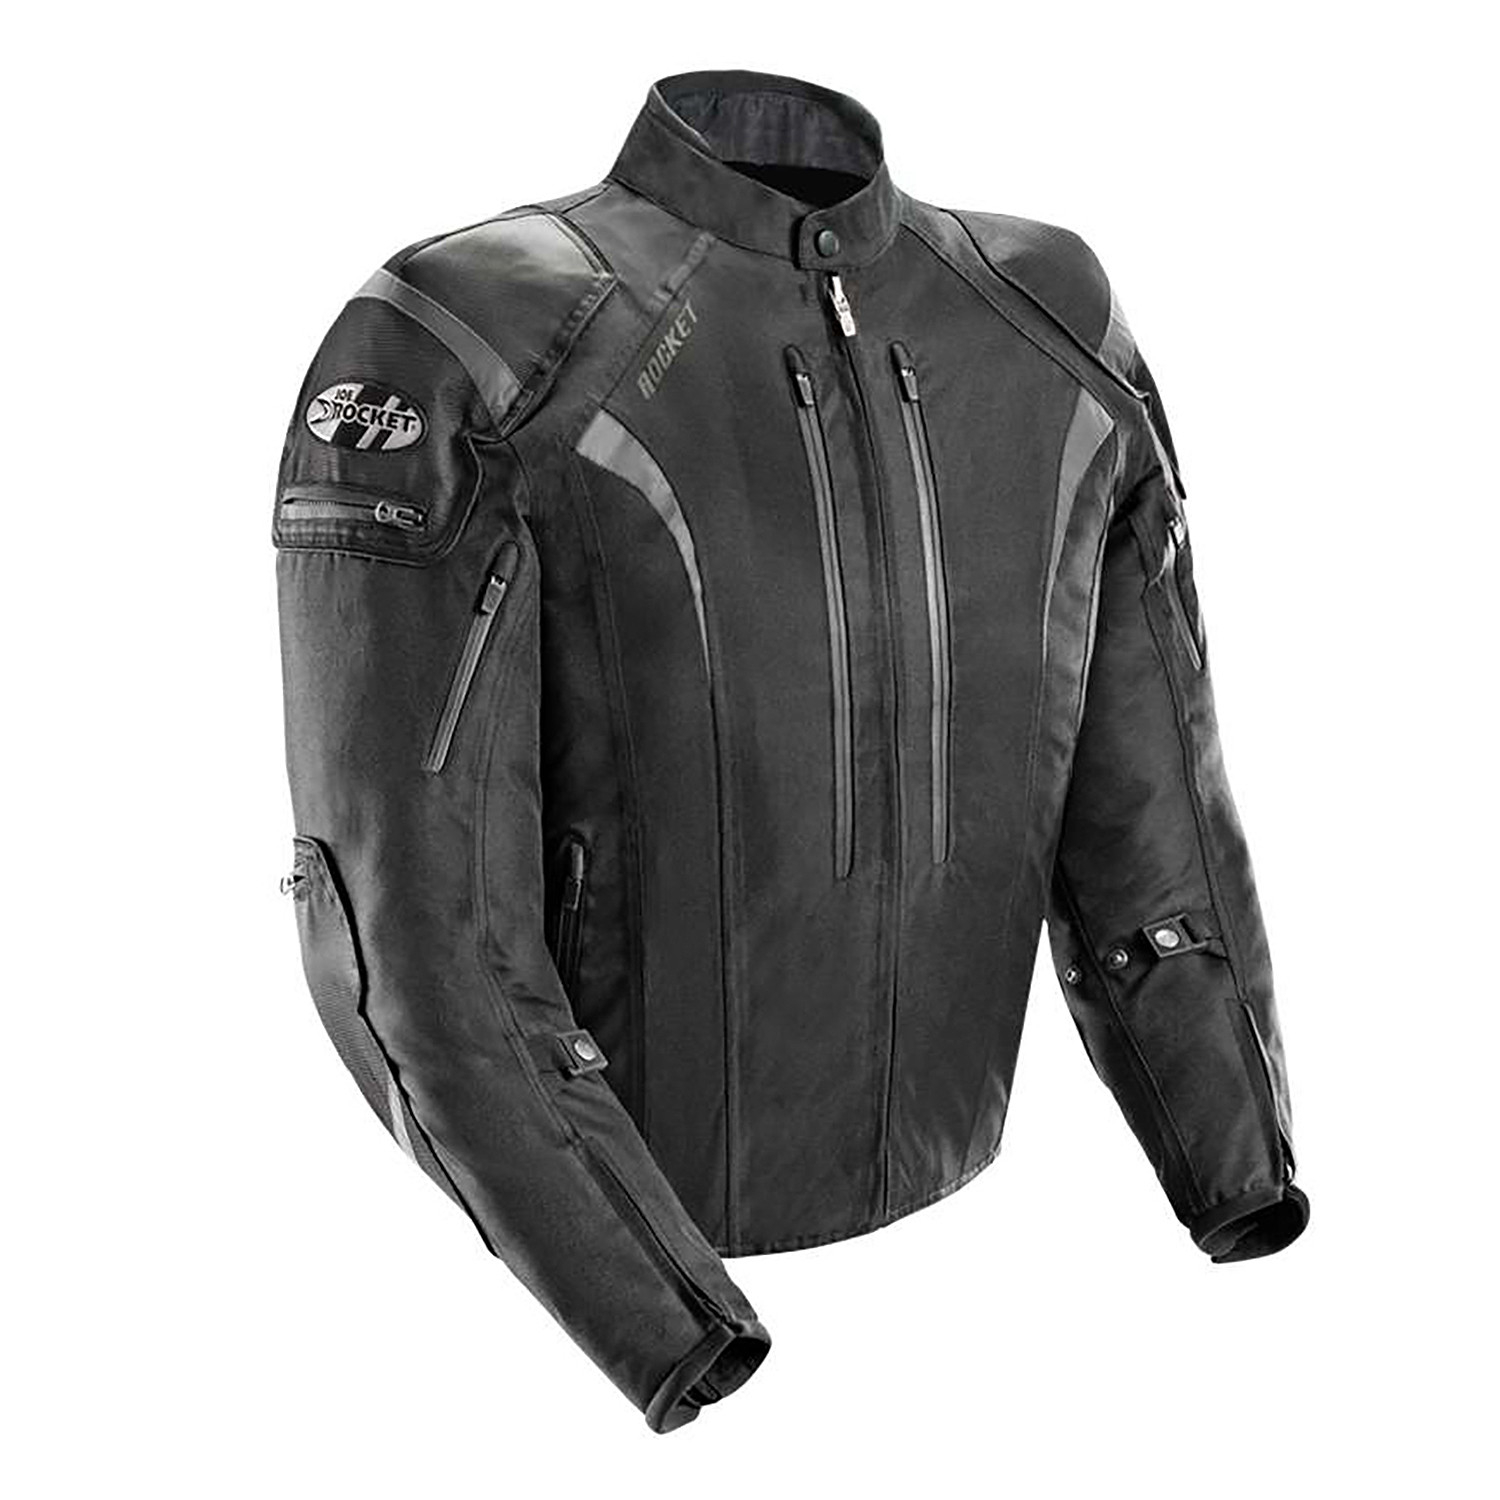 Campera Joe Rocket Atomic 5.0 Negro